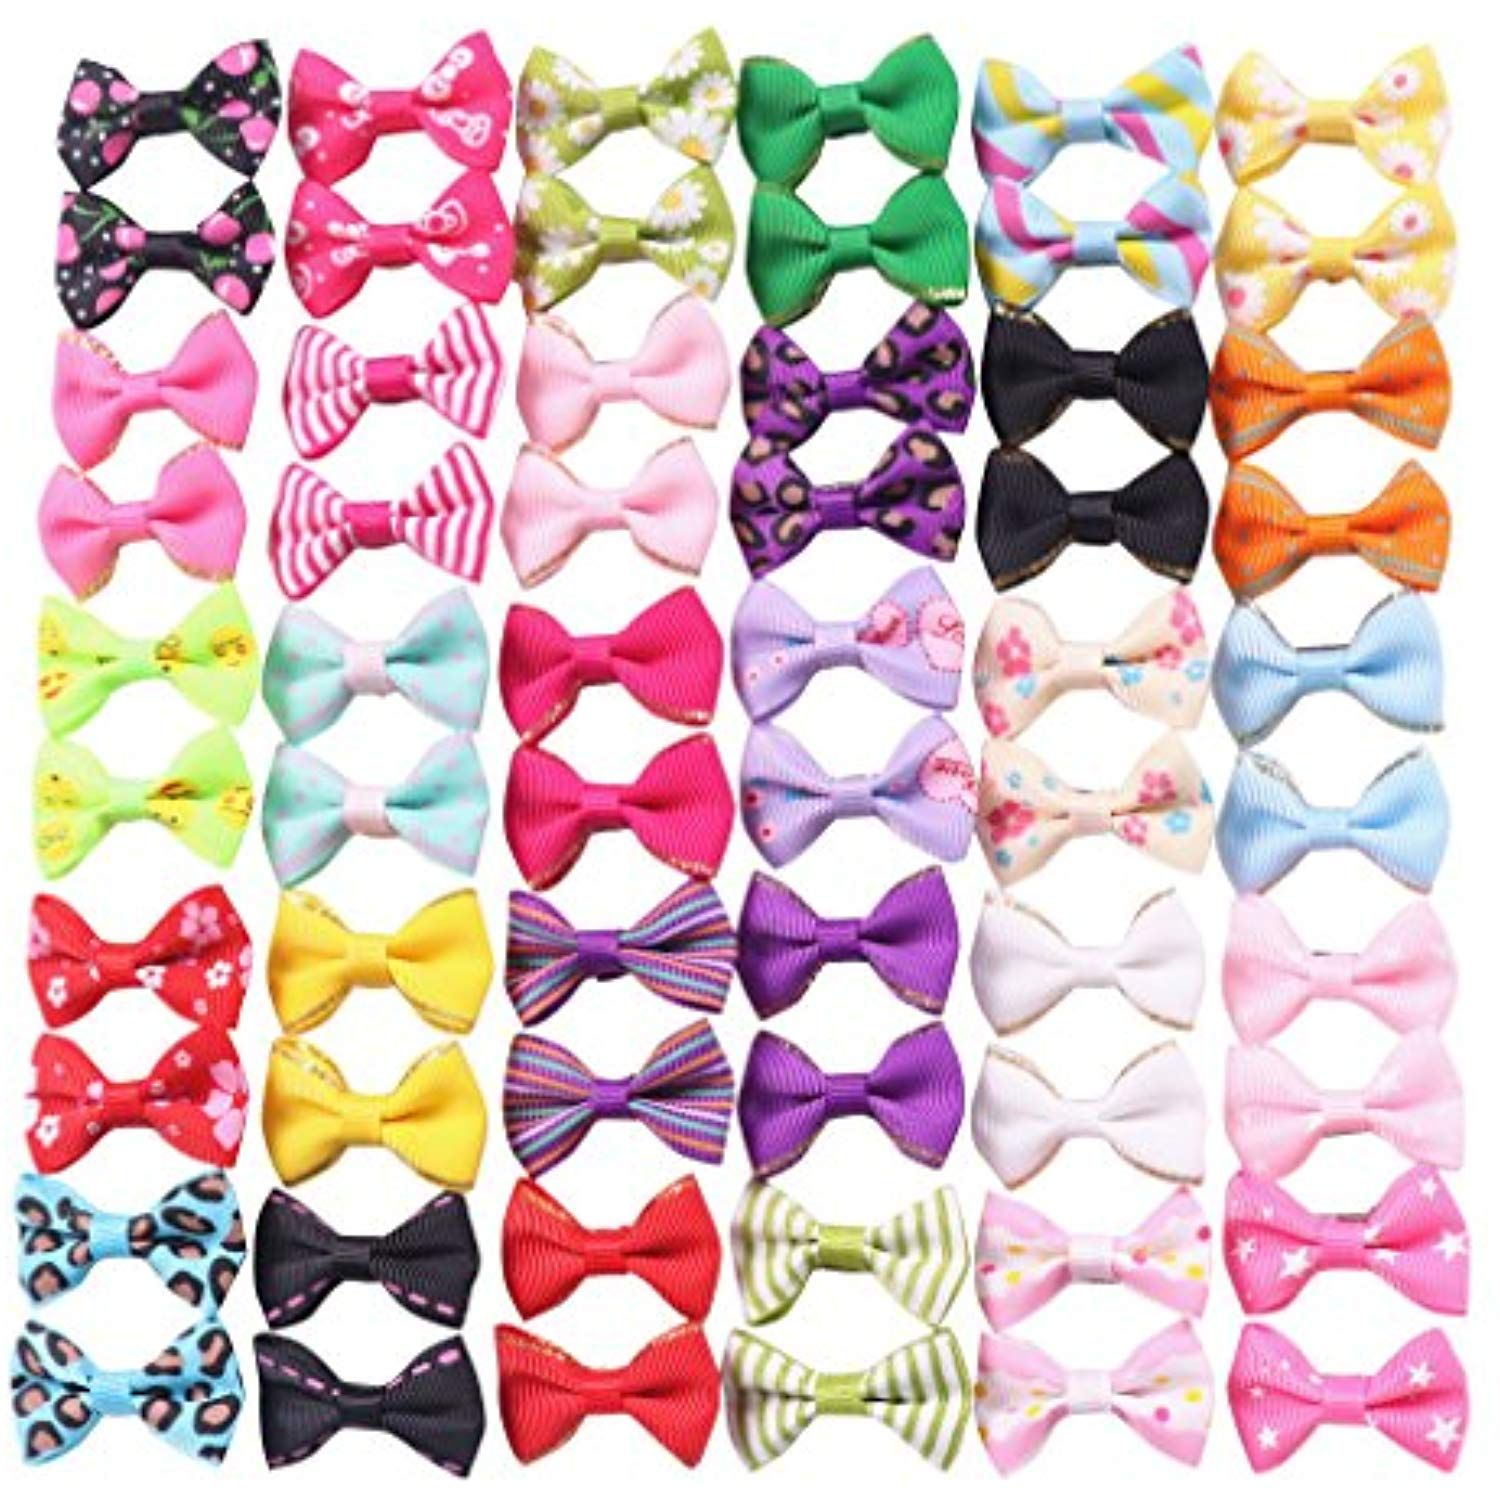 Yaka pcs pairs cute puppy dog small bowknot hair bows with